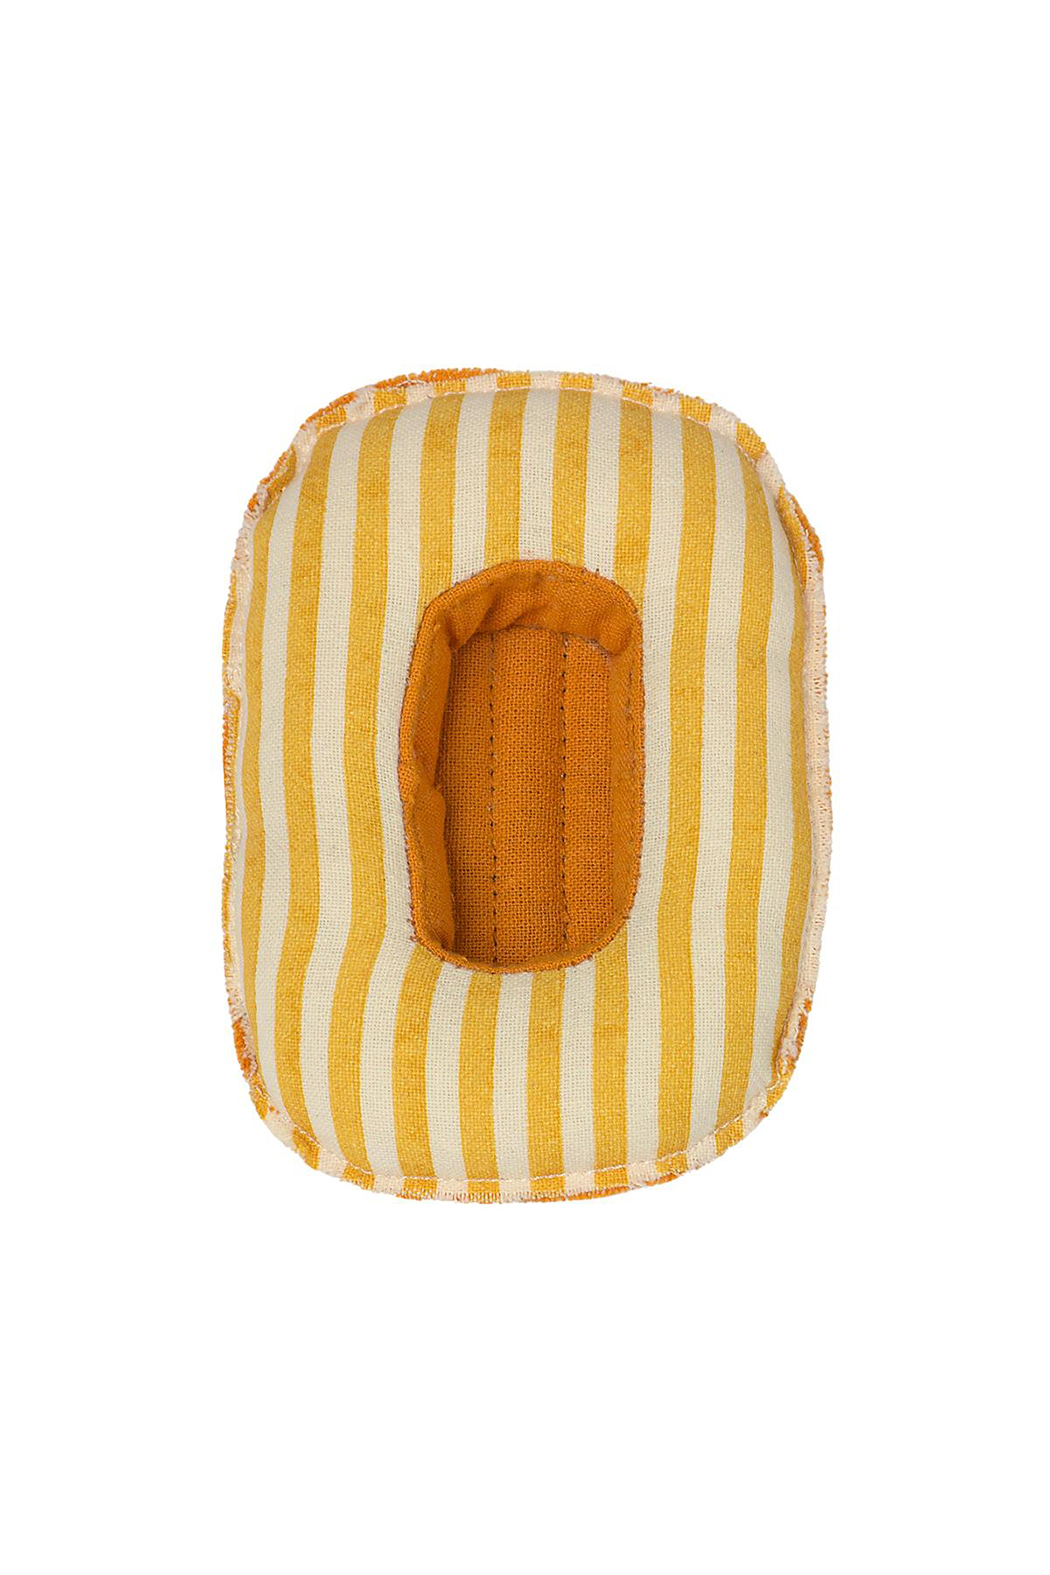 Maileg Rubber Boat - Small Mouse/Yellow Stripe - Side Cropped Image